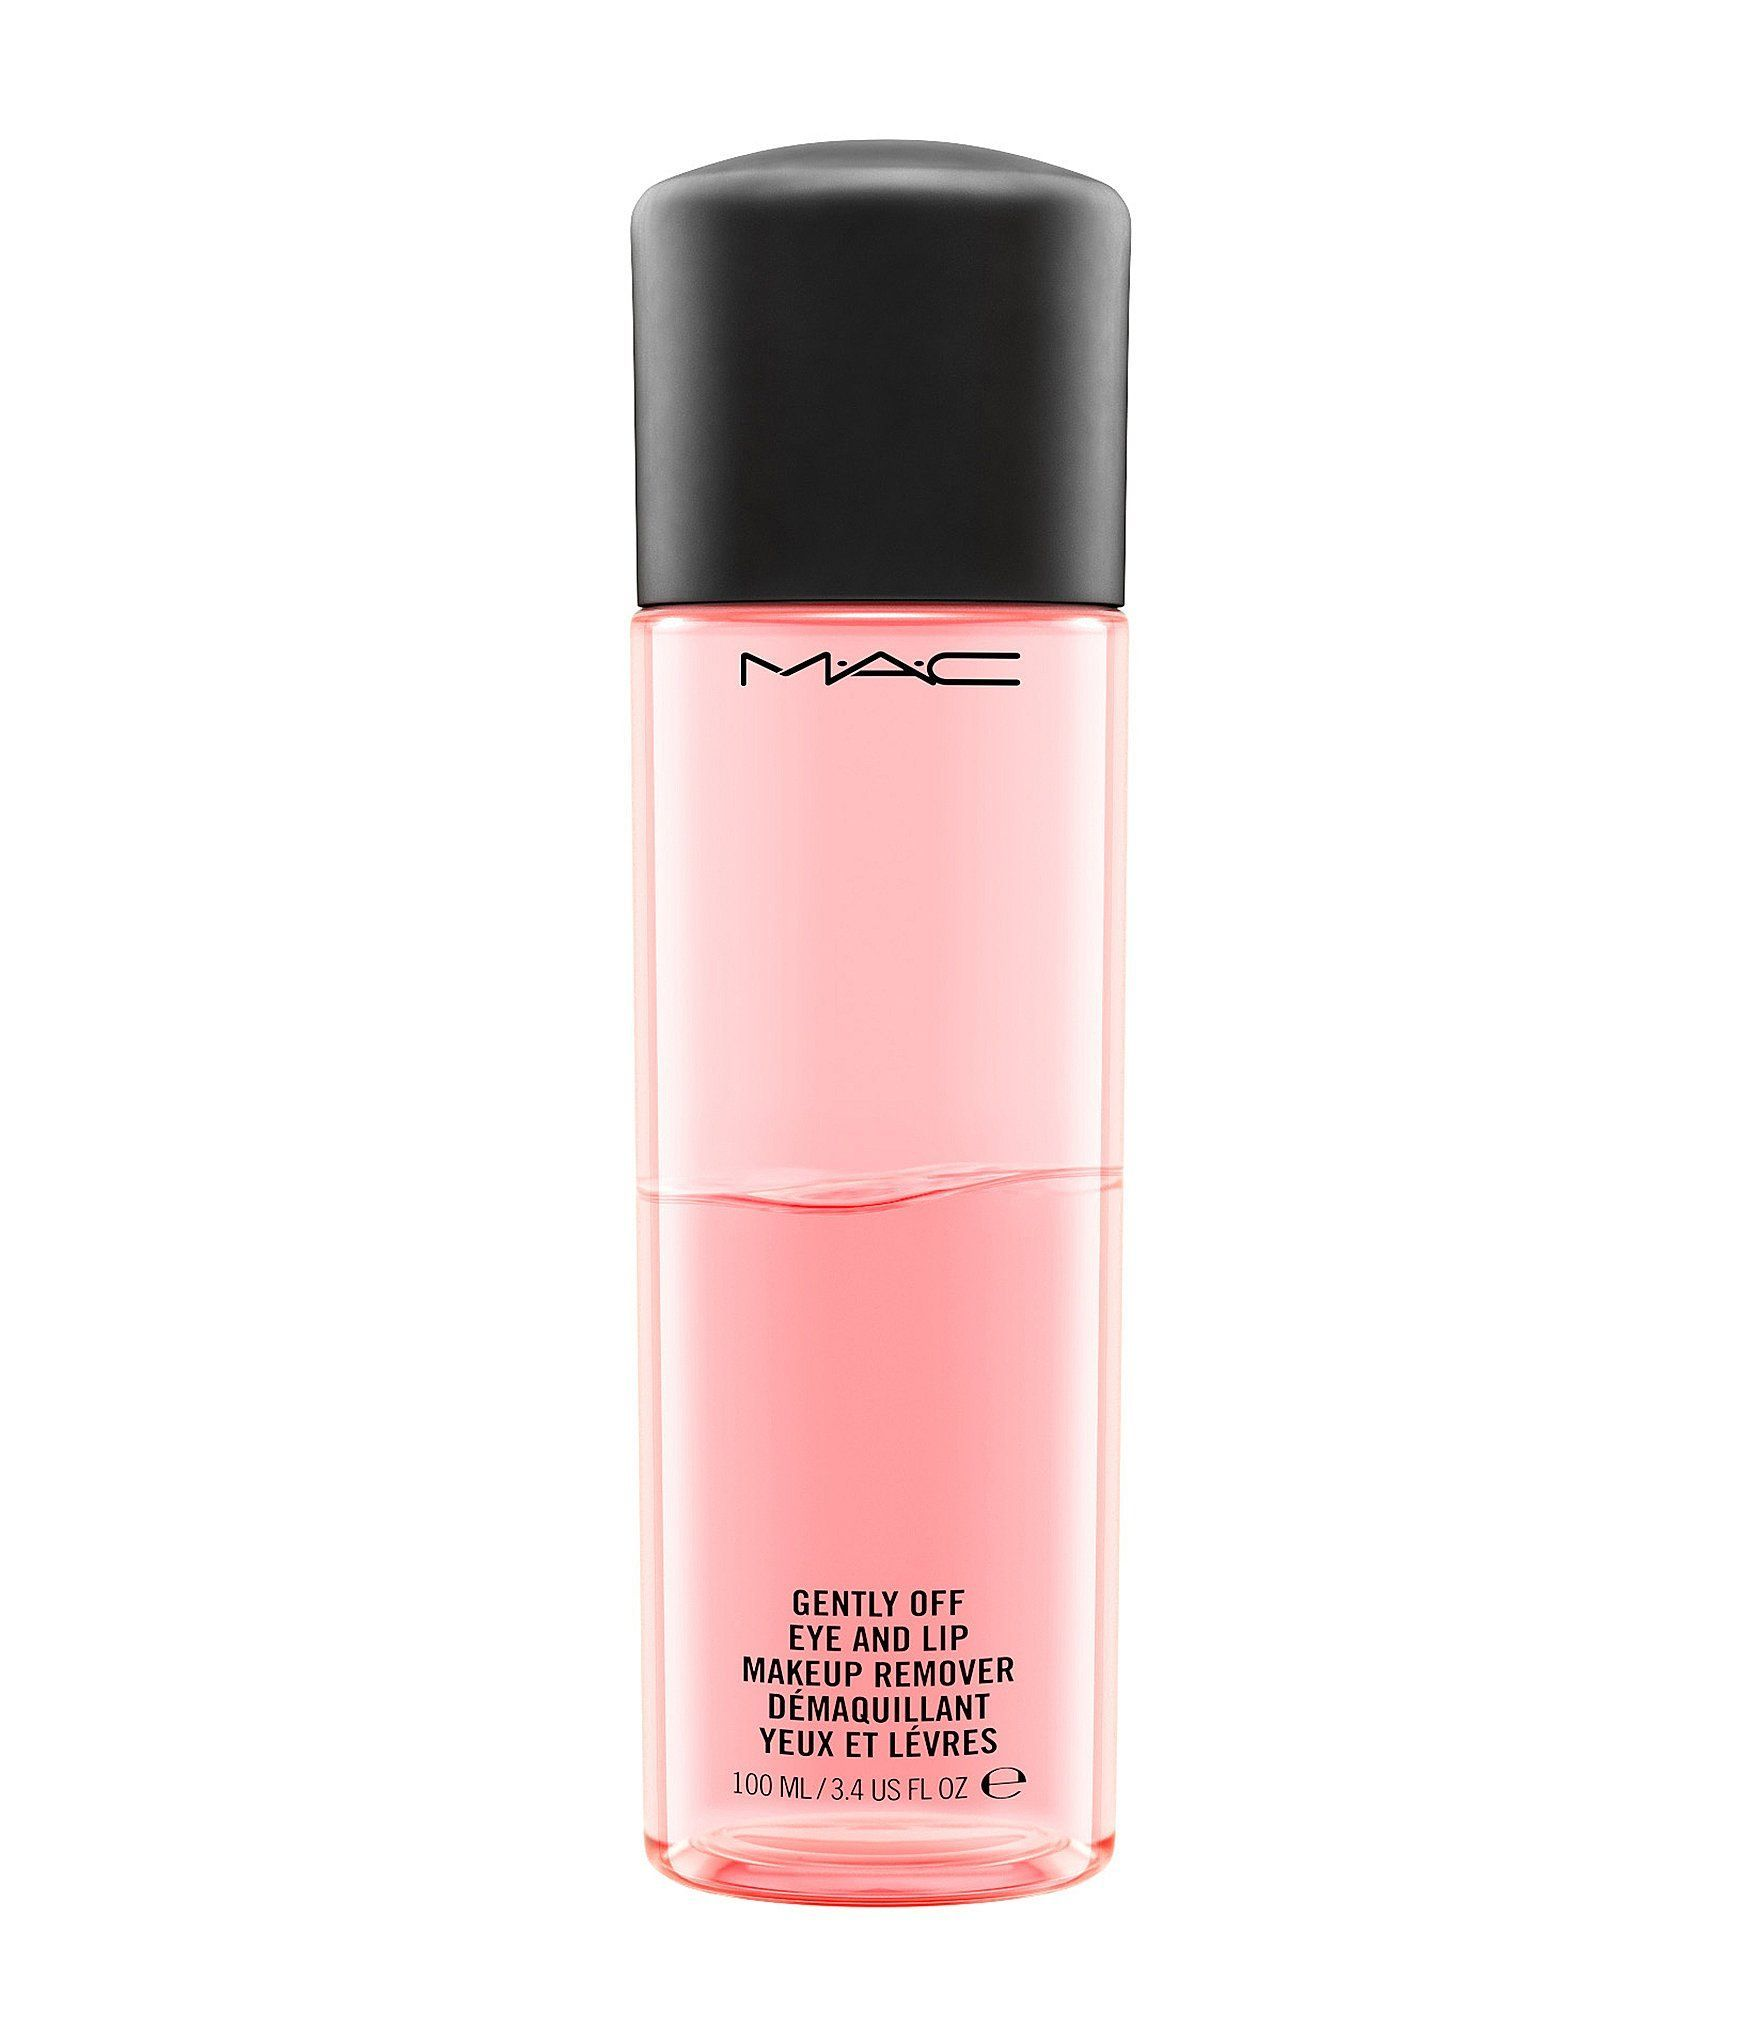 MAC Gently Off Eye and Lip Makeup Remover N/A N/A in